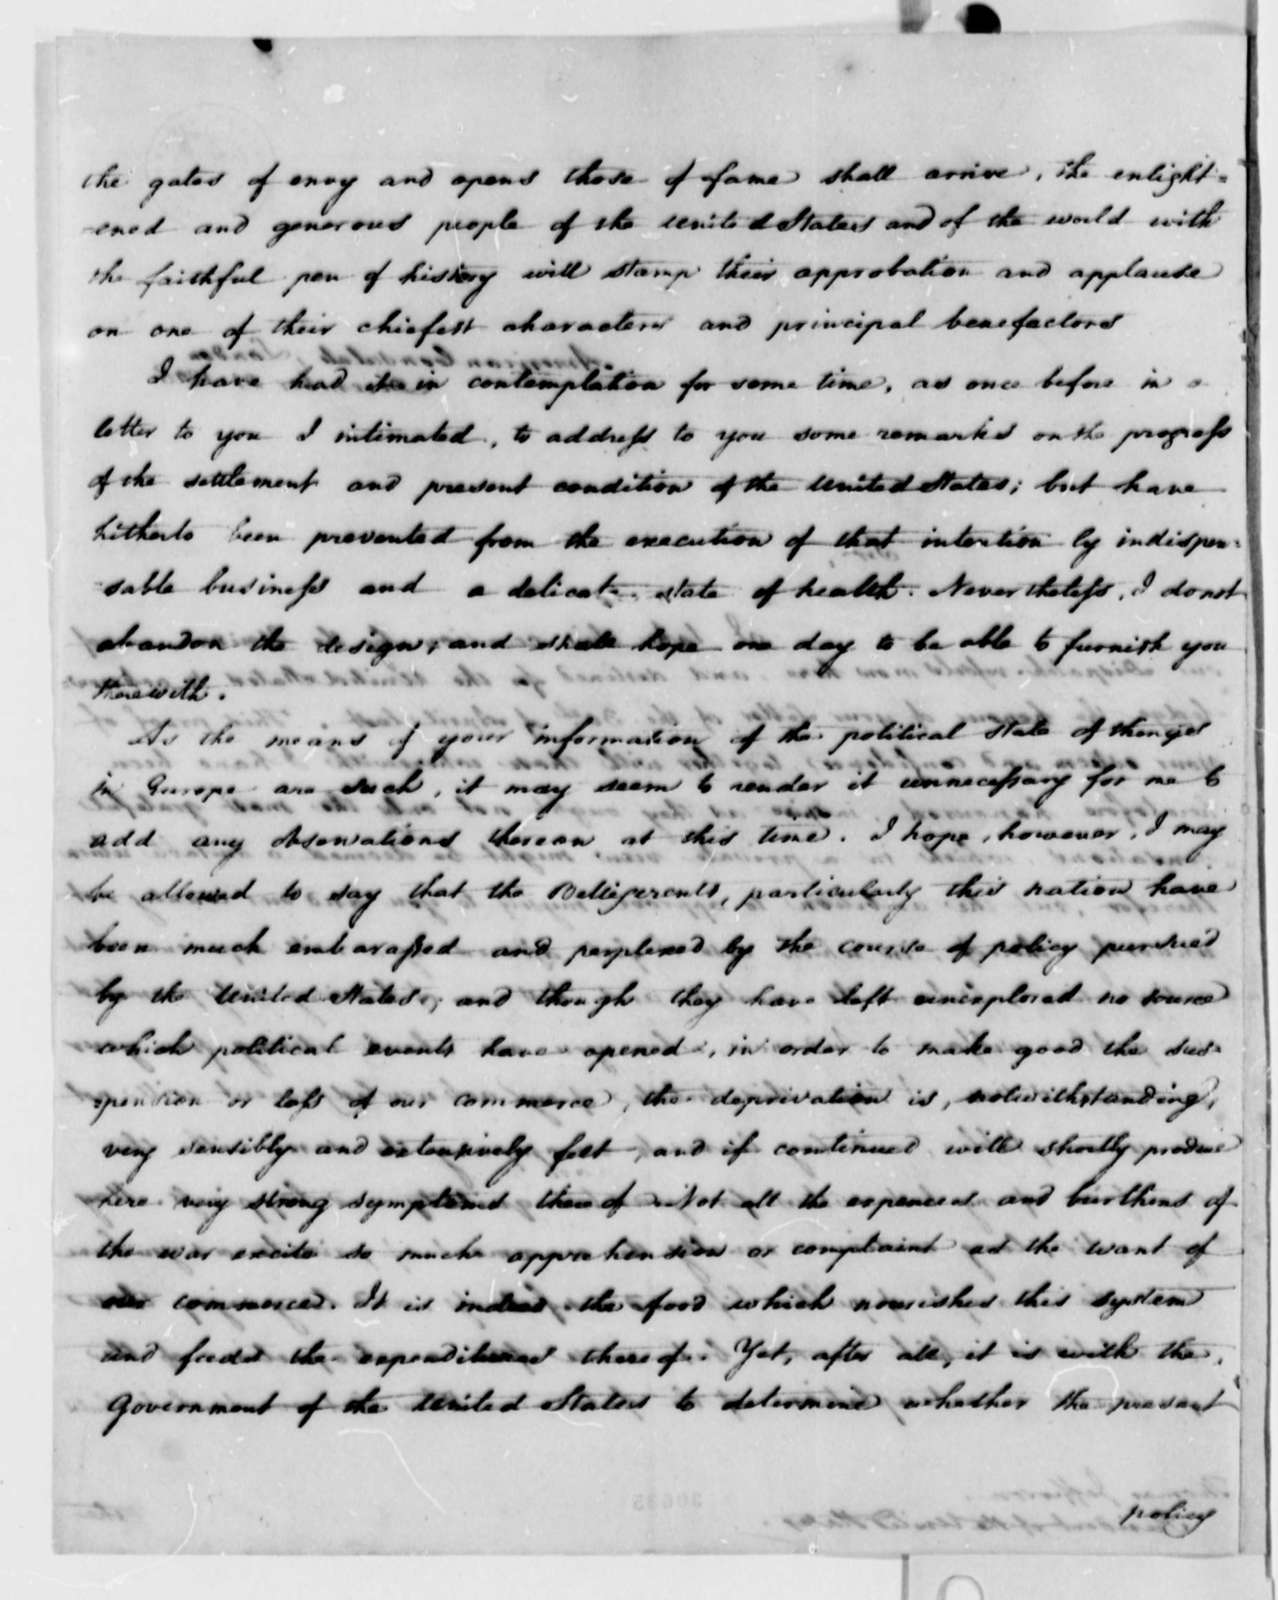 William Lyman to Thomas Jefferson, December 21, 1807